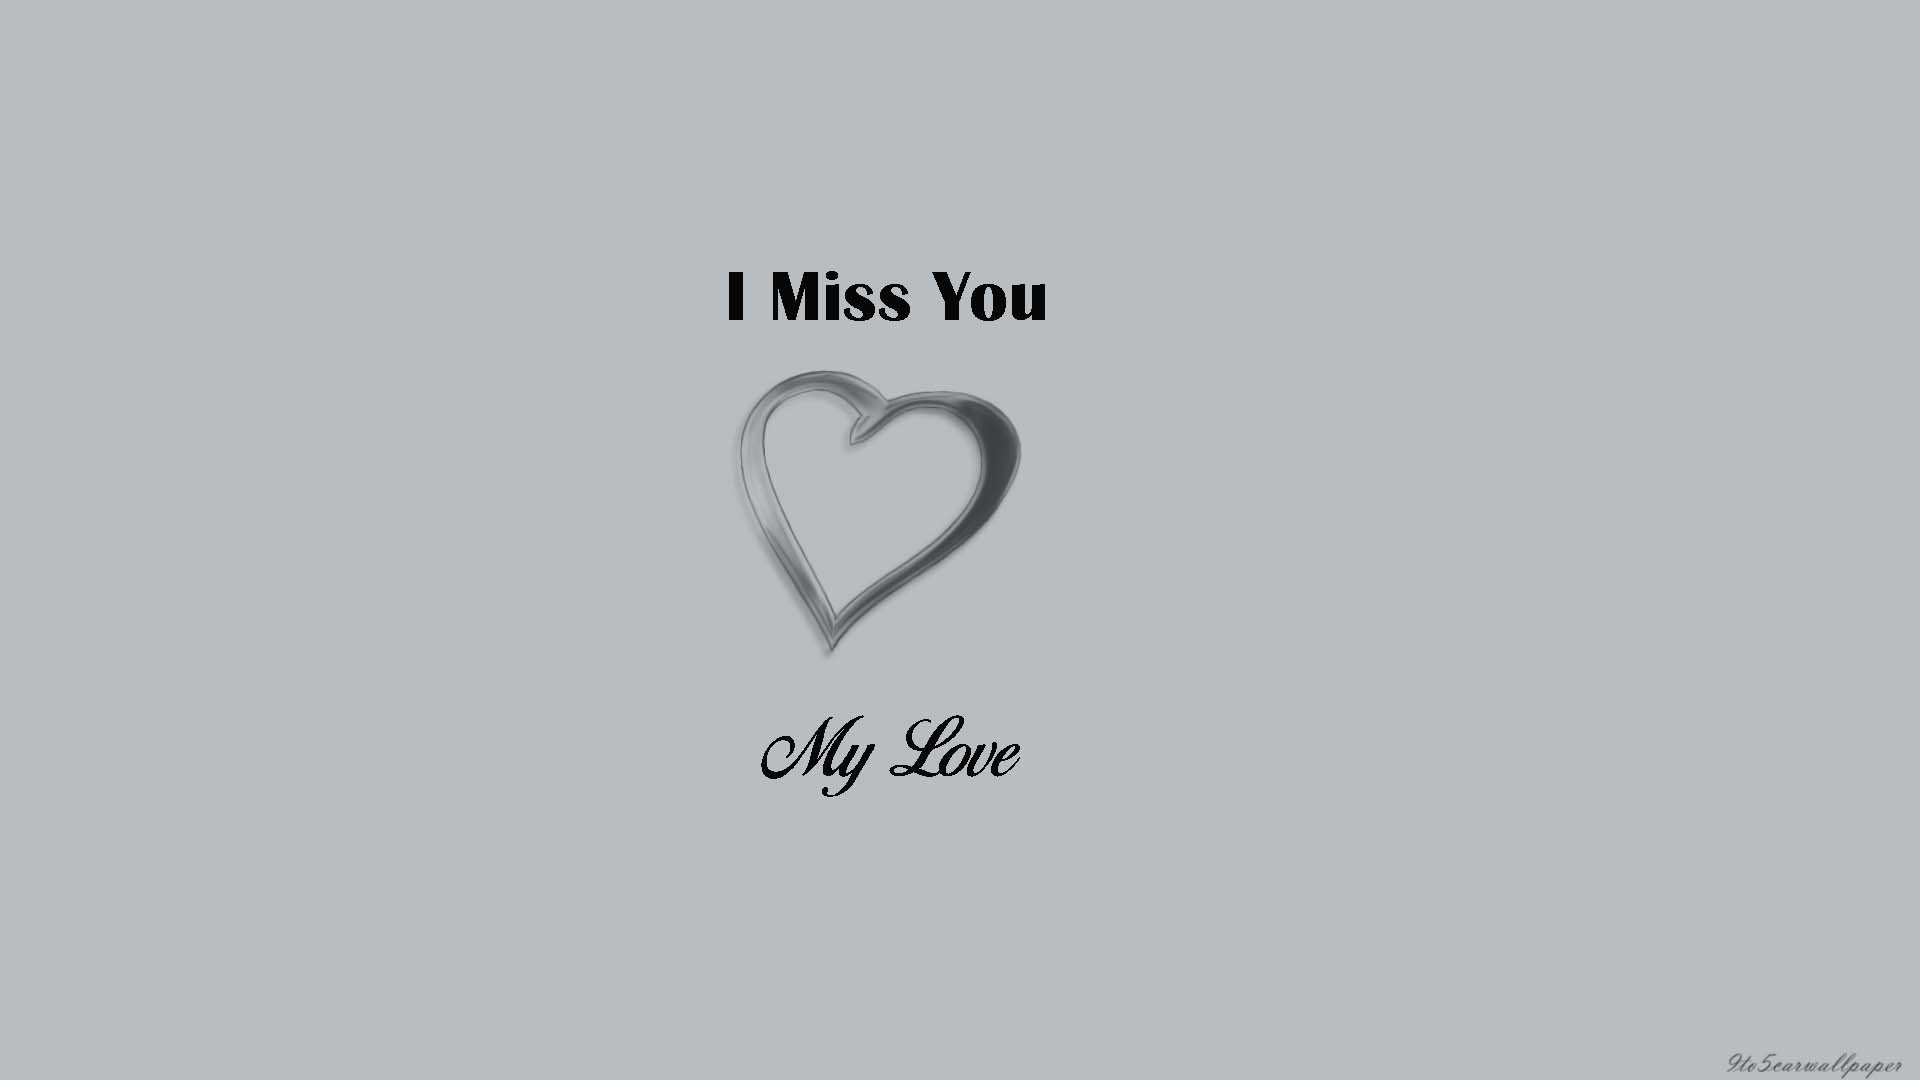 i-miss-you-my-love-images-wallpapers-quotes